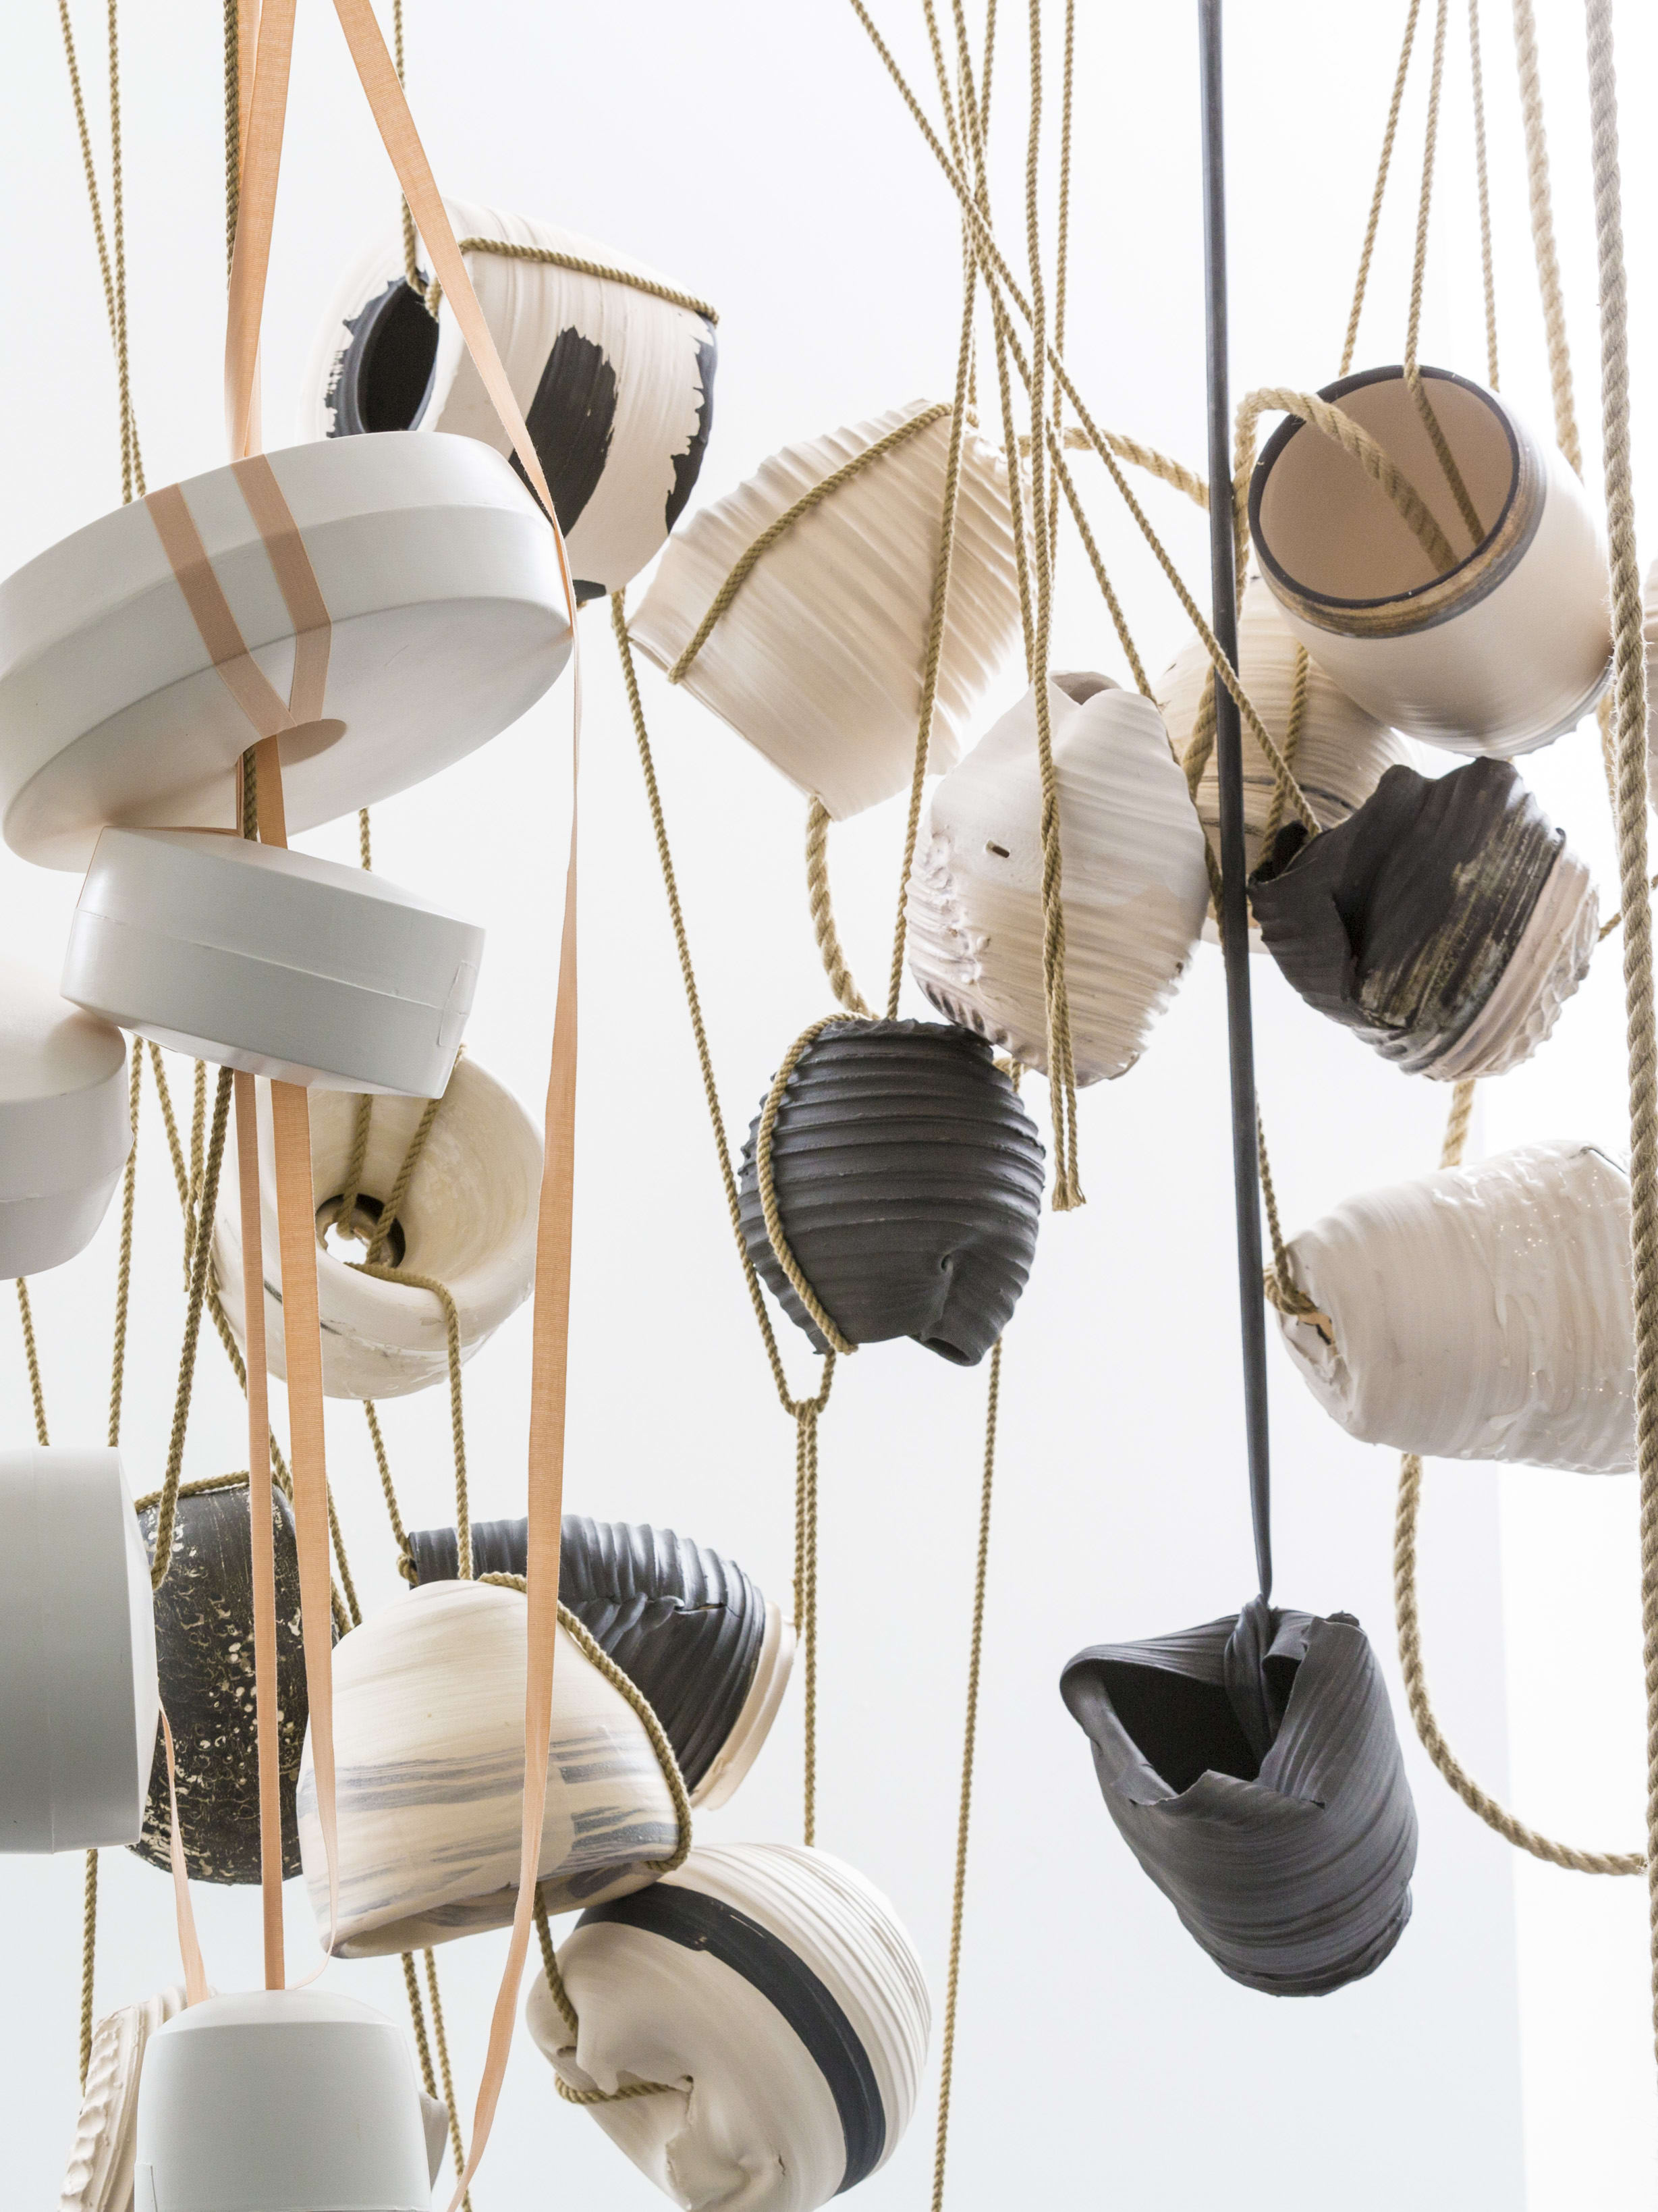 Ceramic objects hanging from string